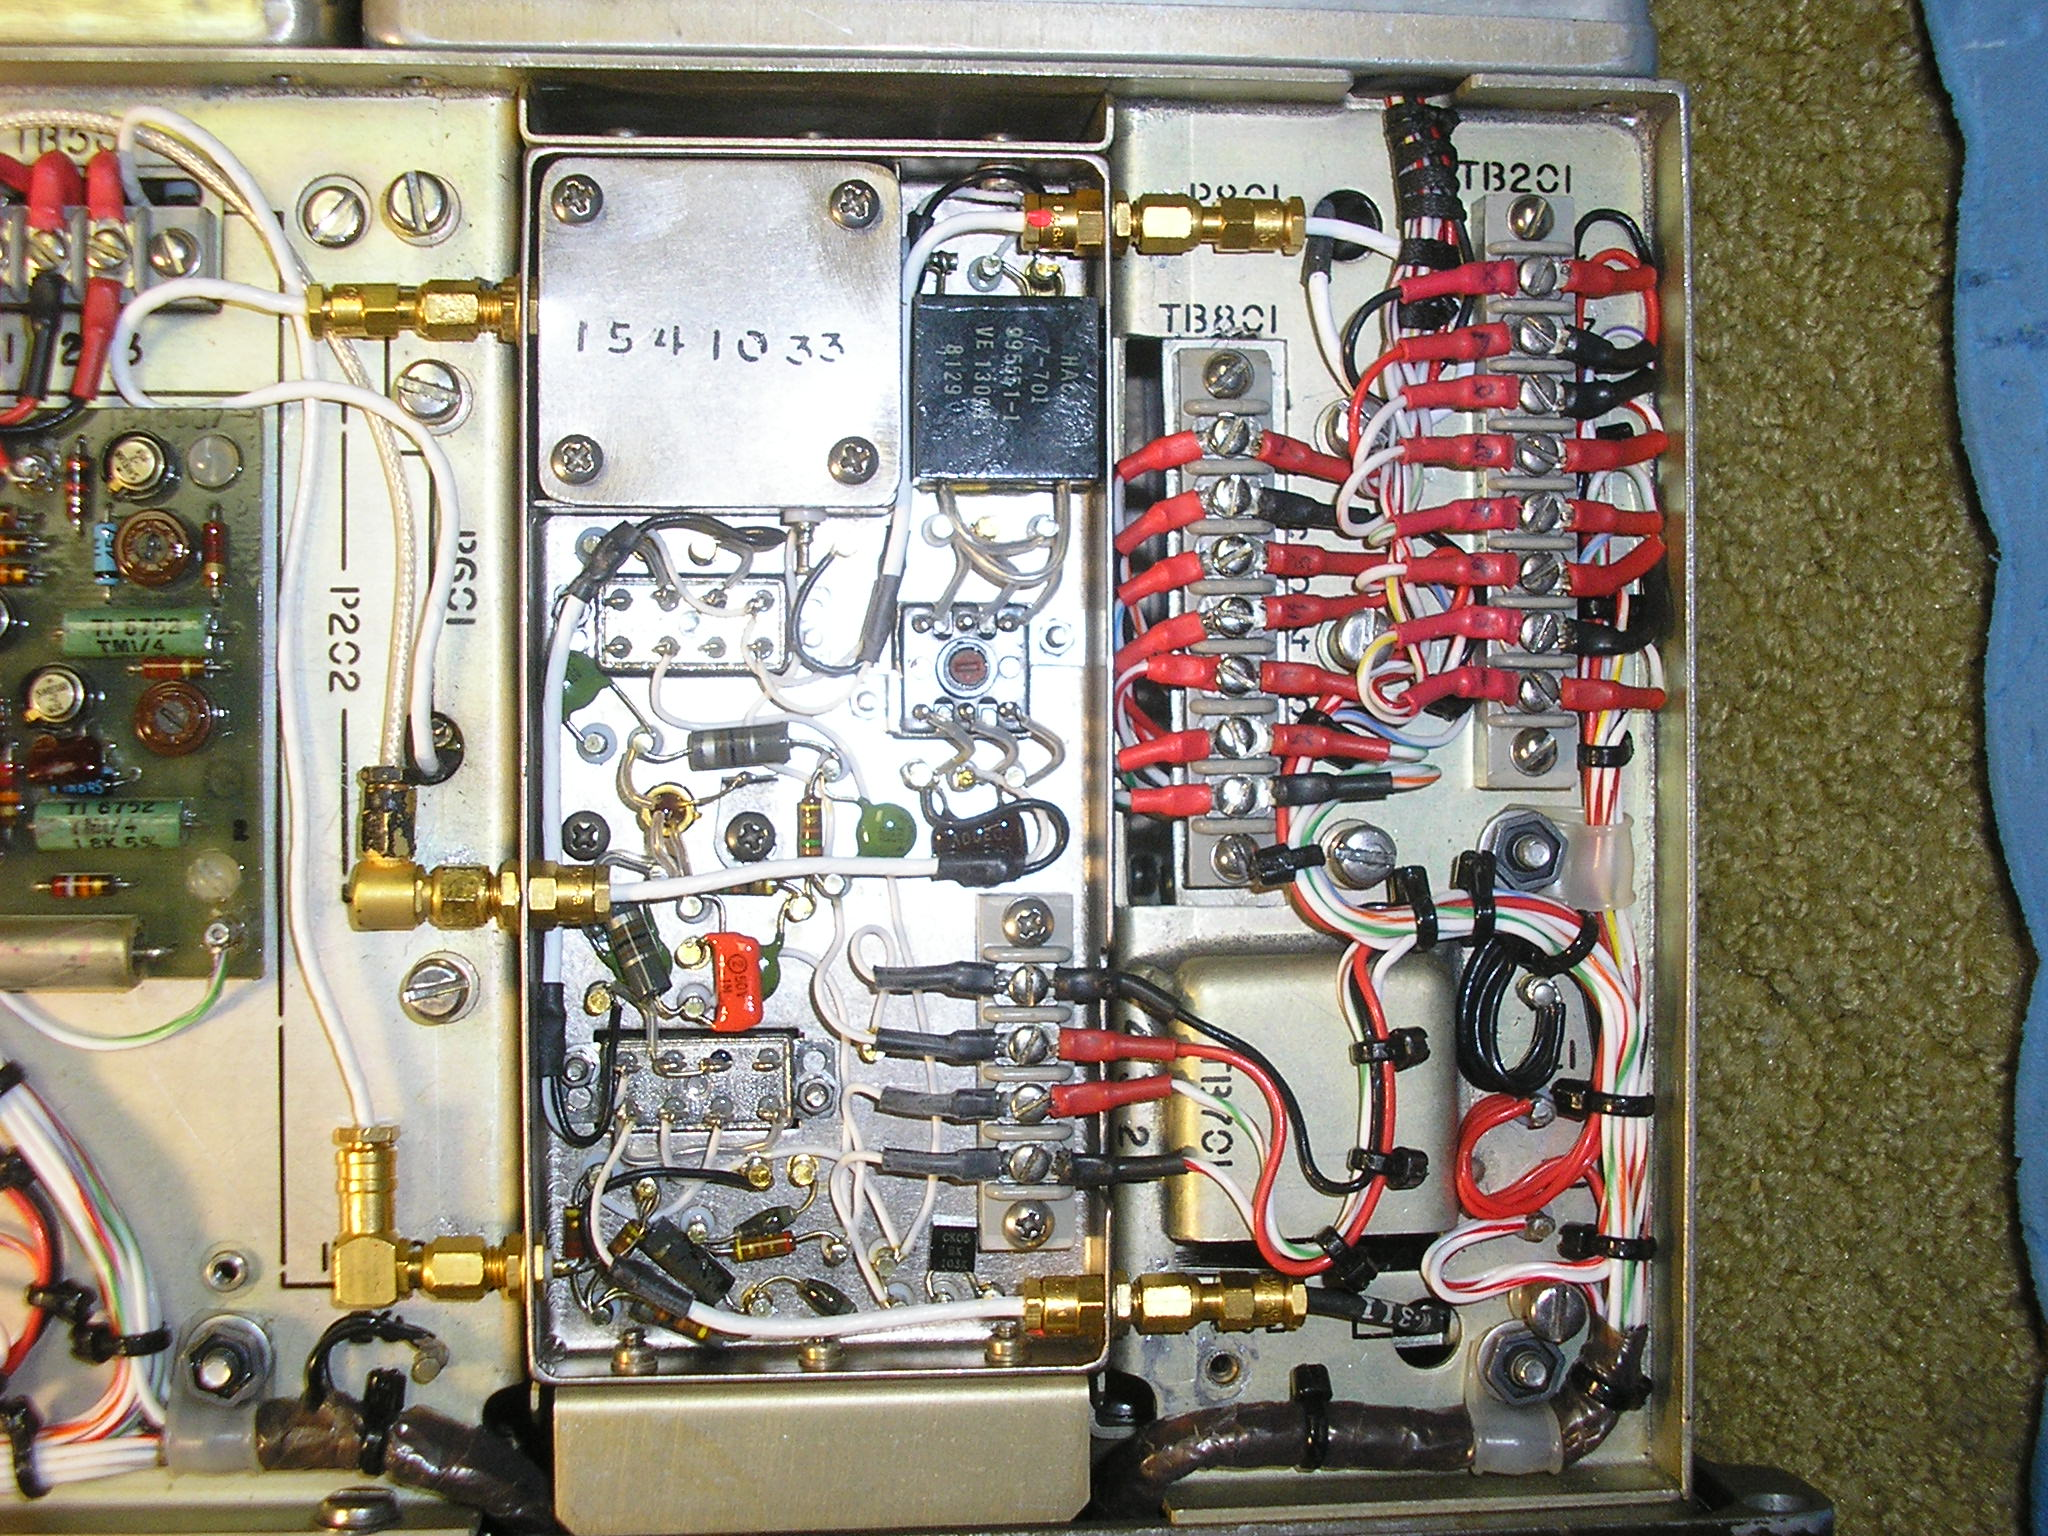 AN/PRC-74B chassis wiring, typical